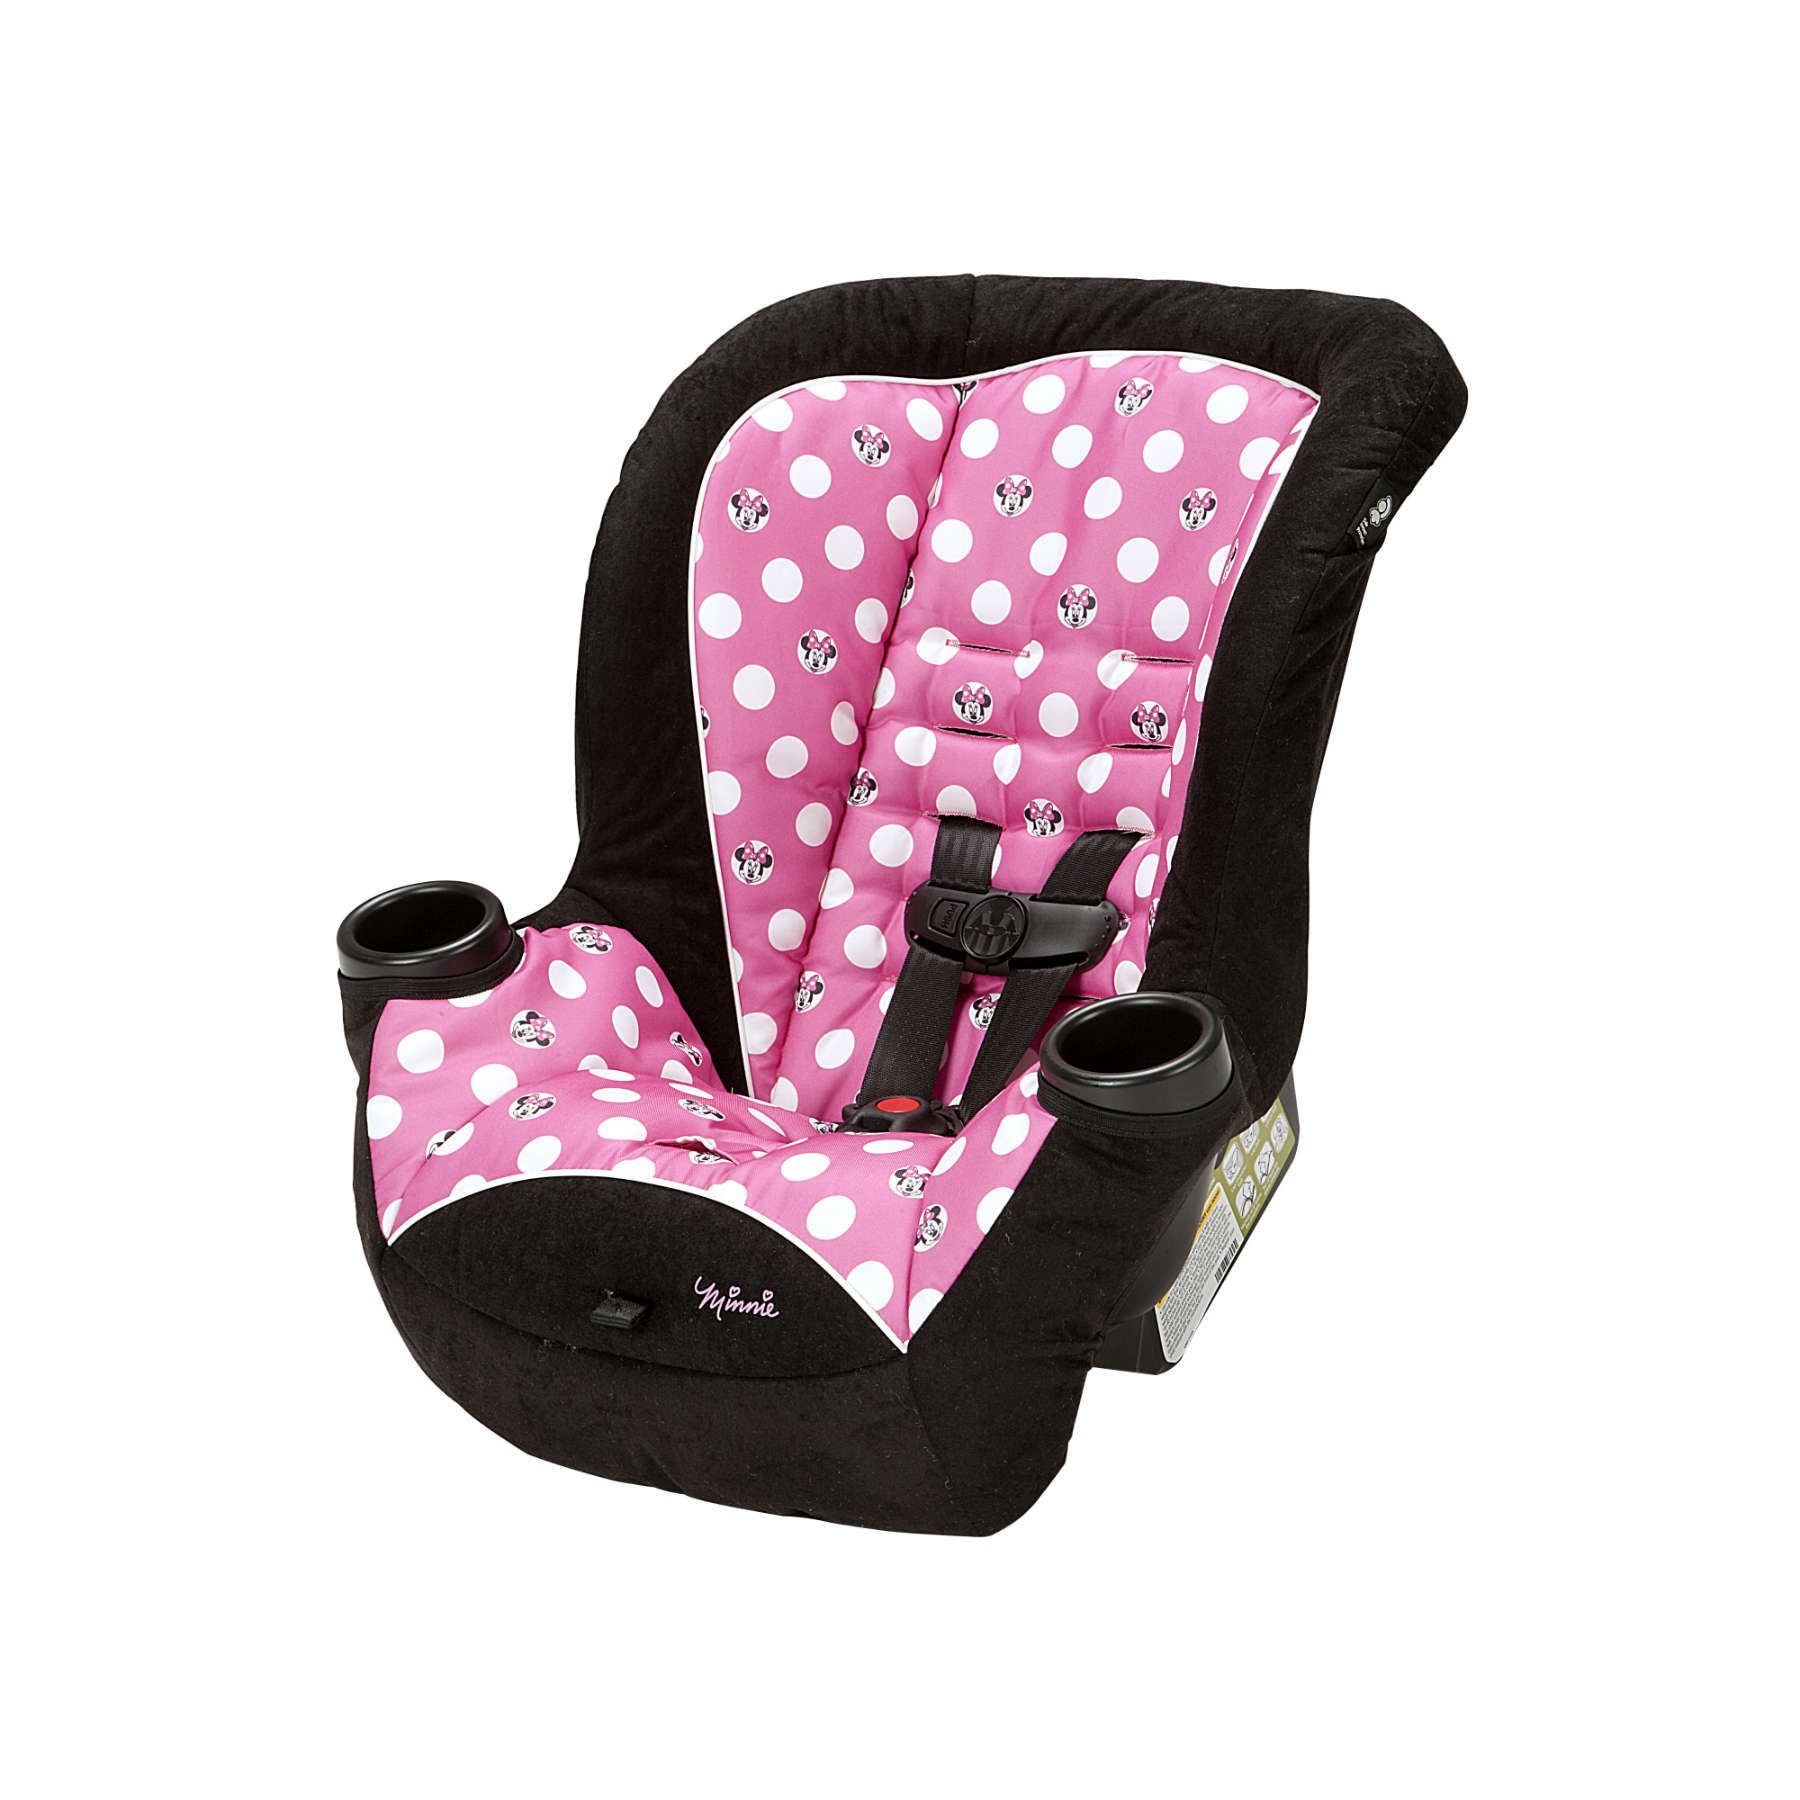 Minnie Mouse Apt 40rf Convertible Car Seat Car Seats Baby